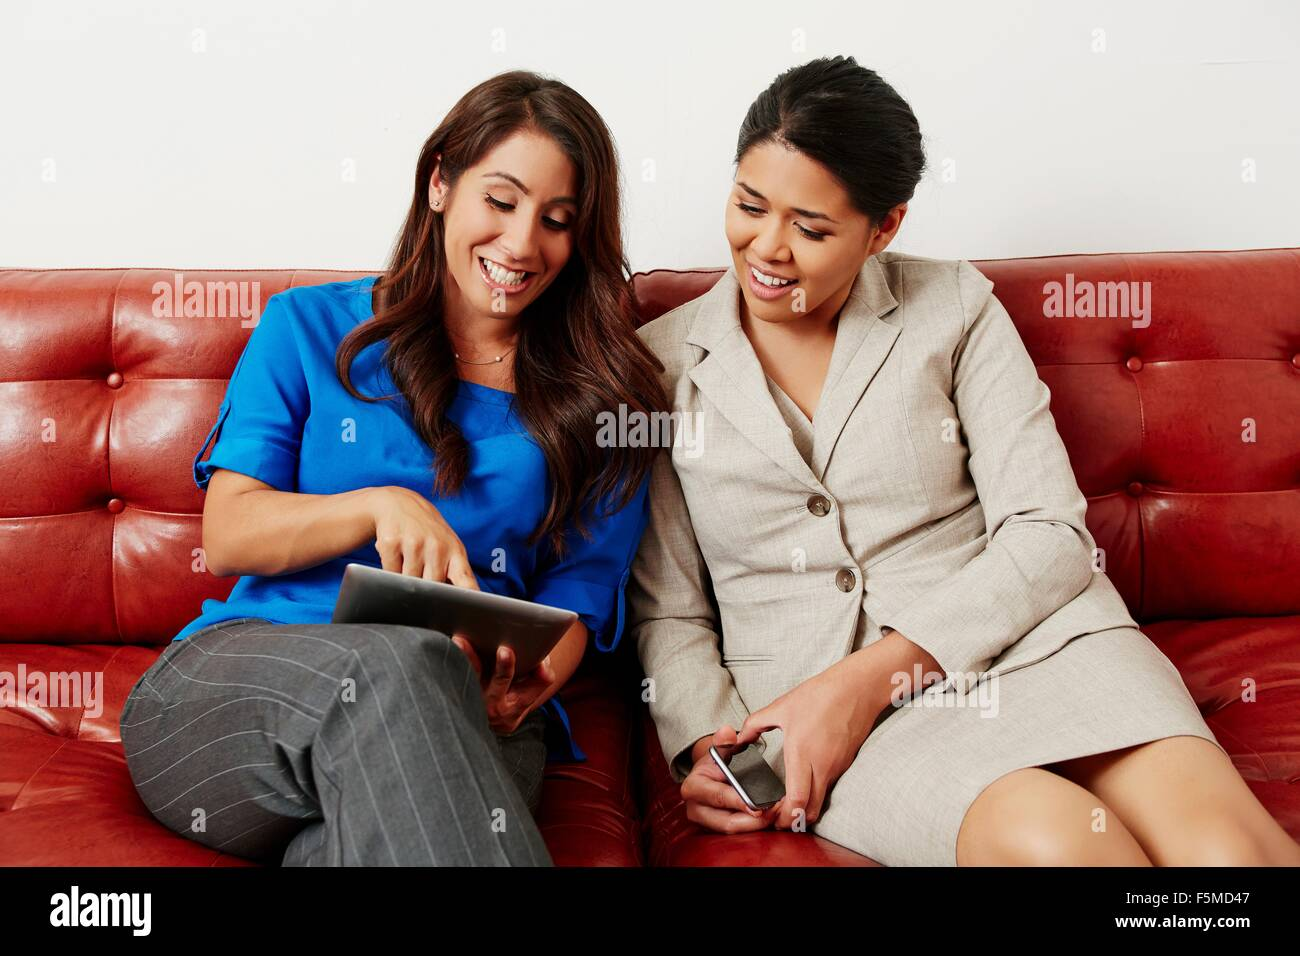 Two businesswomen sitting on sofa, looking at digital tablet - Stock Image